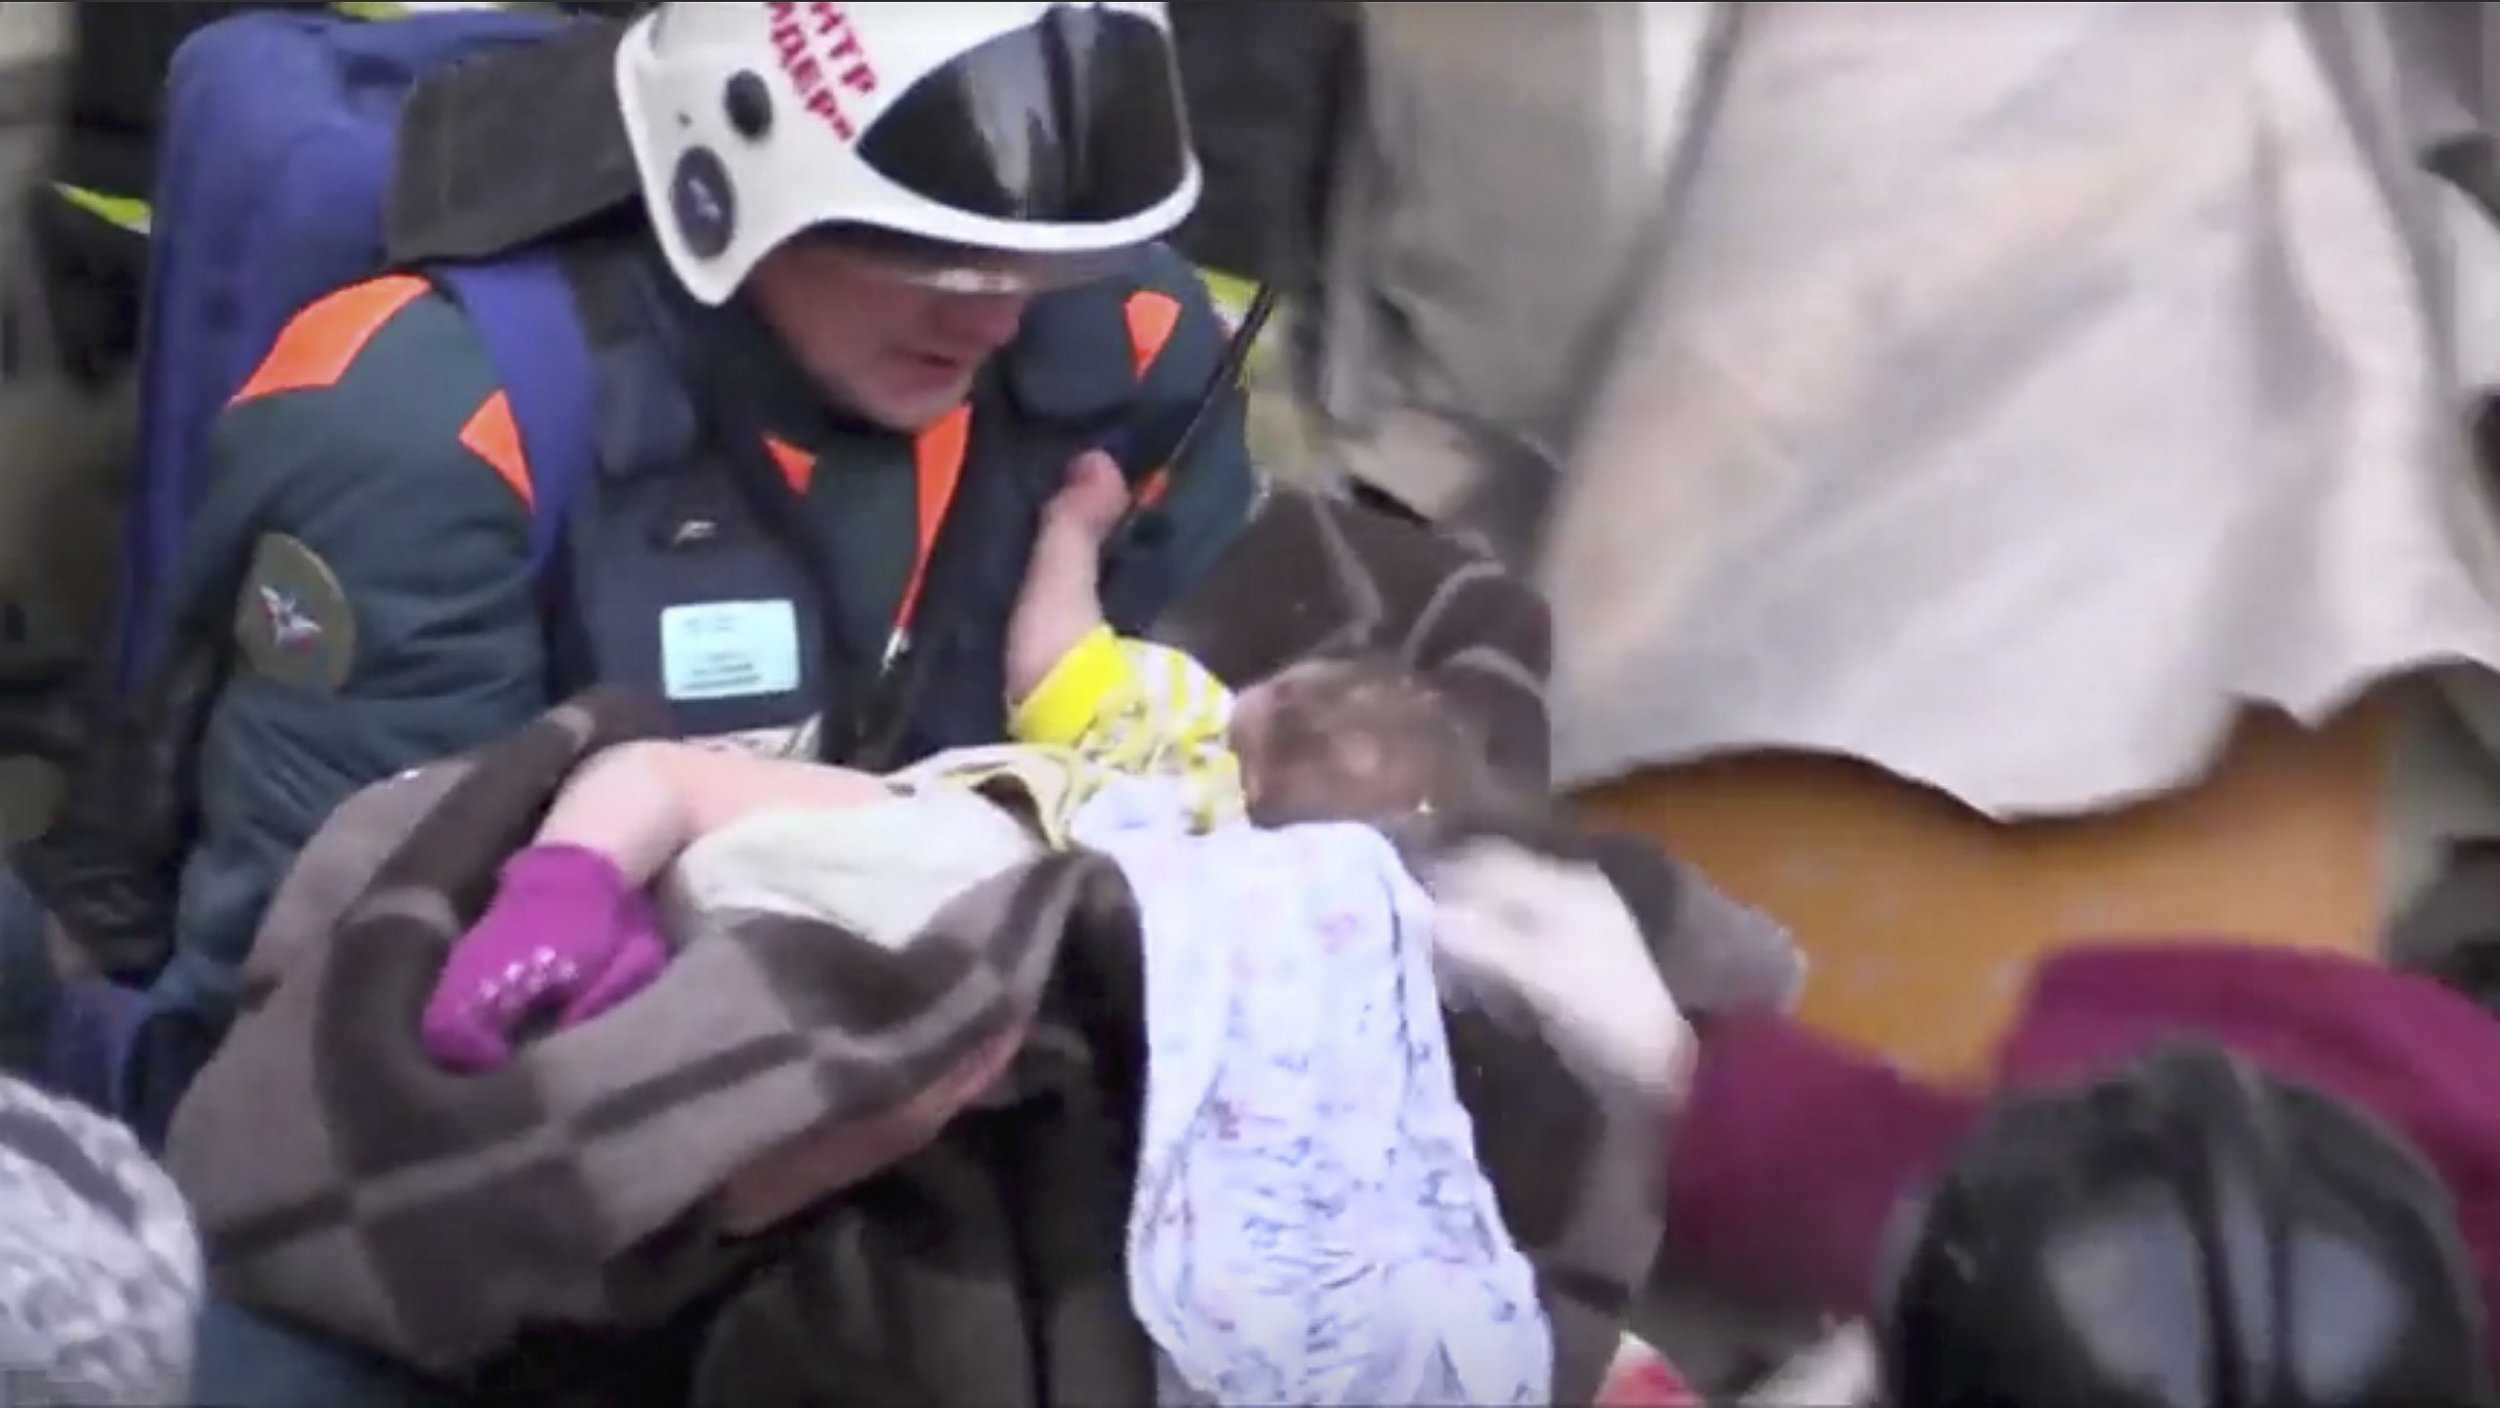 REFILE - CORRECTING AGE OF A CHILD A still image taken from a video footage showsaA rescuer carries a 11-month-old child found alive in the rubble of a Russian apartment block that partially collapsed after a suspected gas blast in Magnitogorsk, Russia January 1, 2019. Minister of Civil Defence, Emergencies and Disaster Relief/Handout via REUTERS TV ATTENTION EDITORS - THIS IMAGE WAS PROVIDED BY A THIRD PARTY. NO RESALES. NO ARCHIVES.